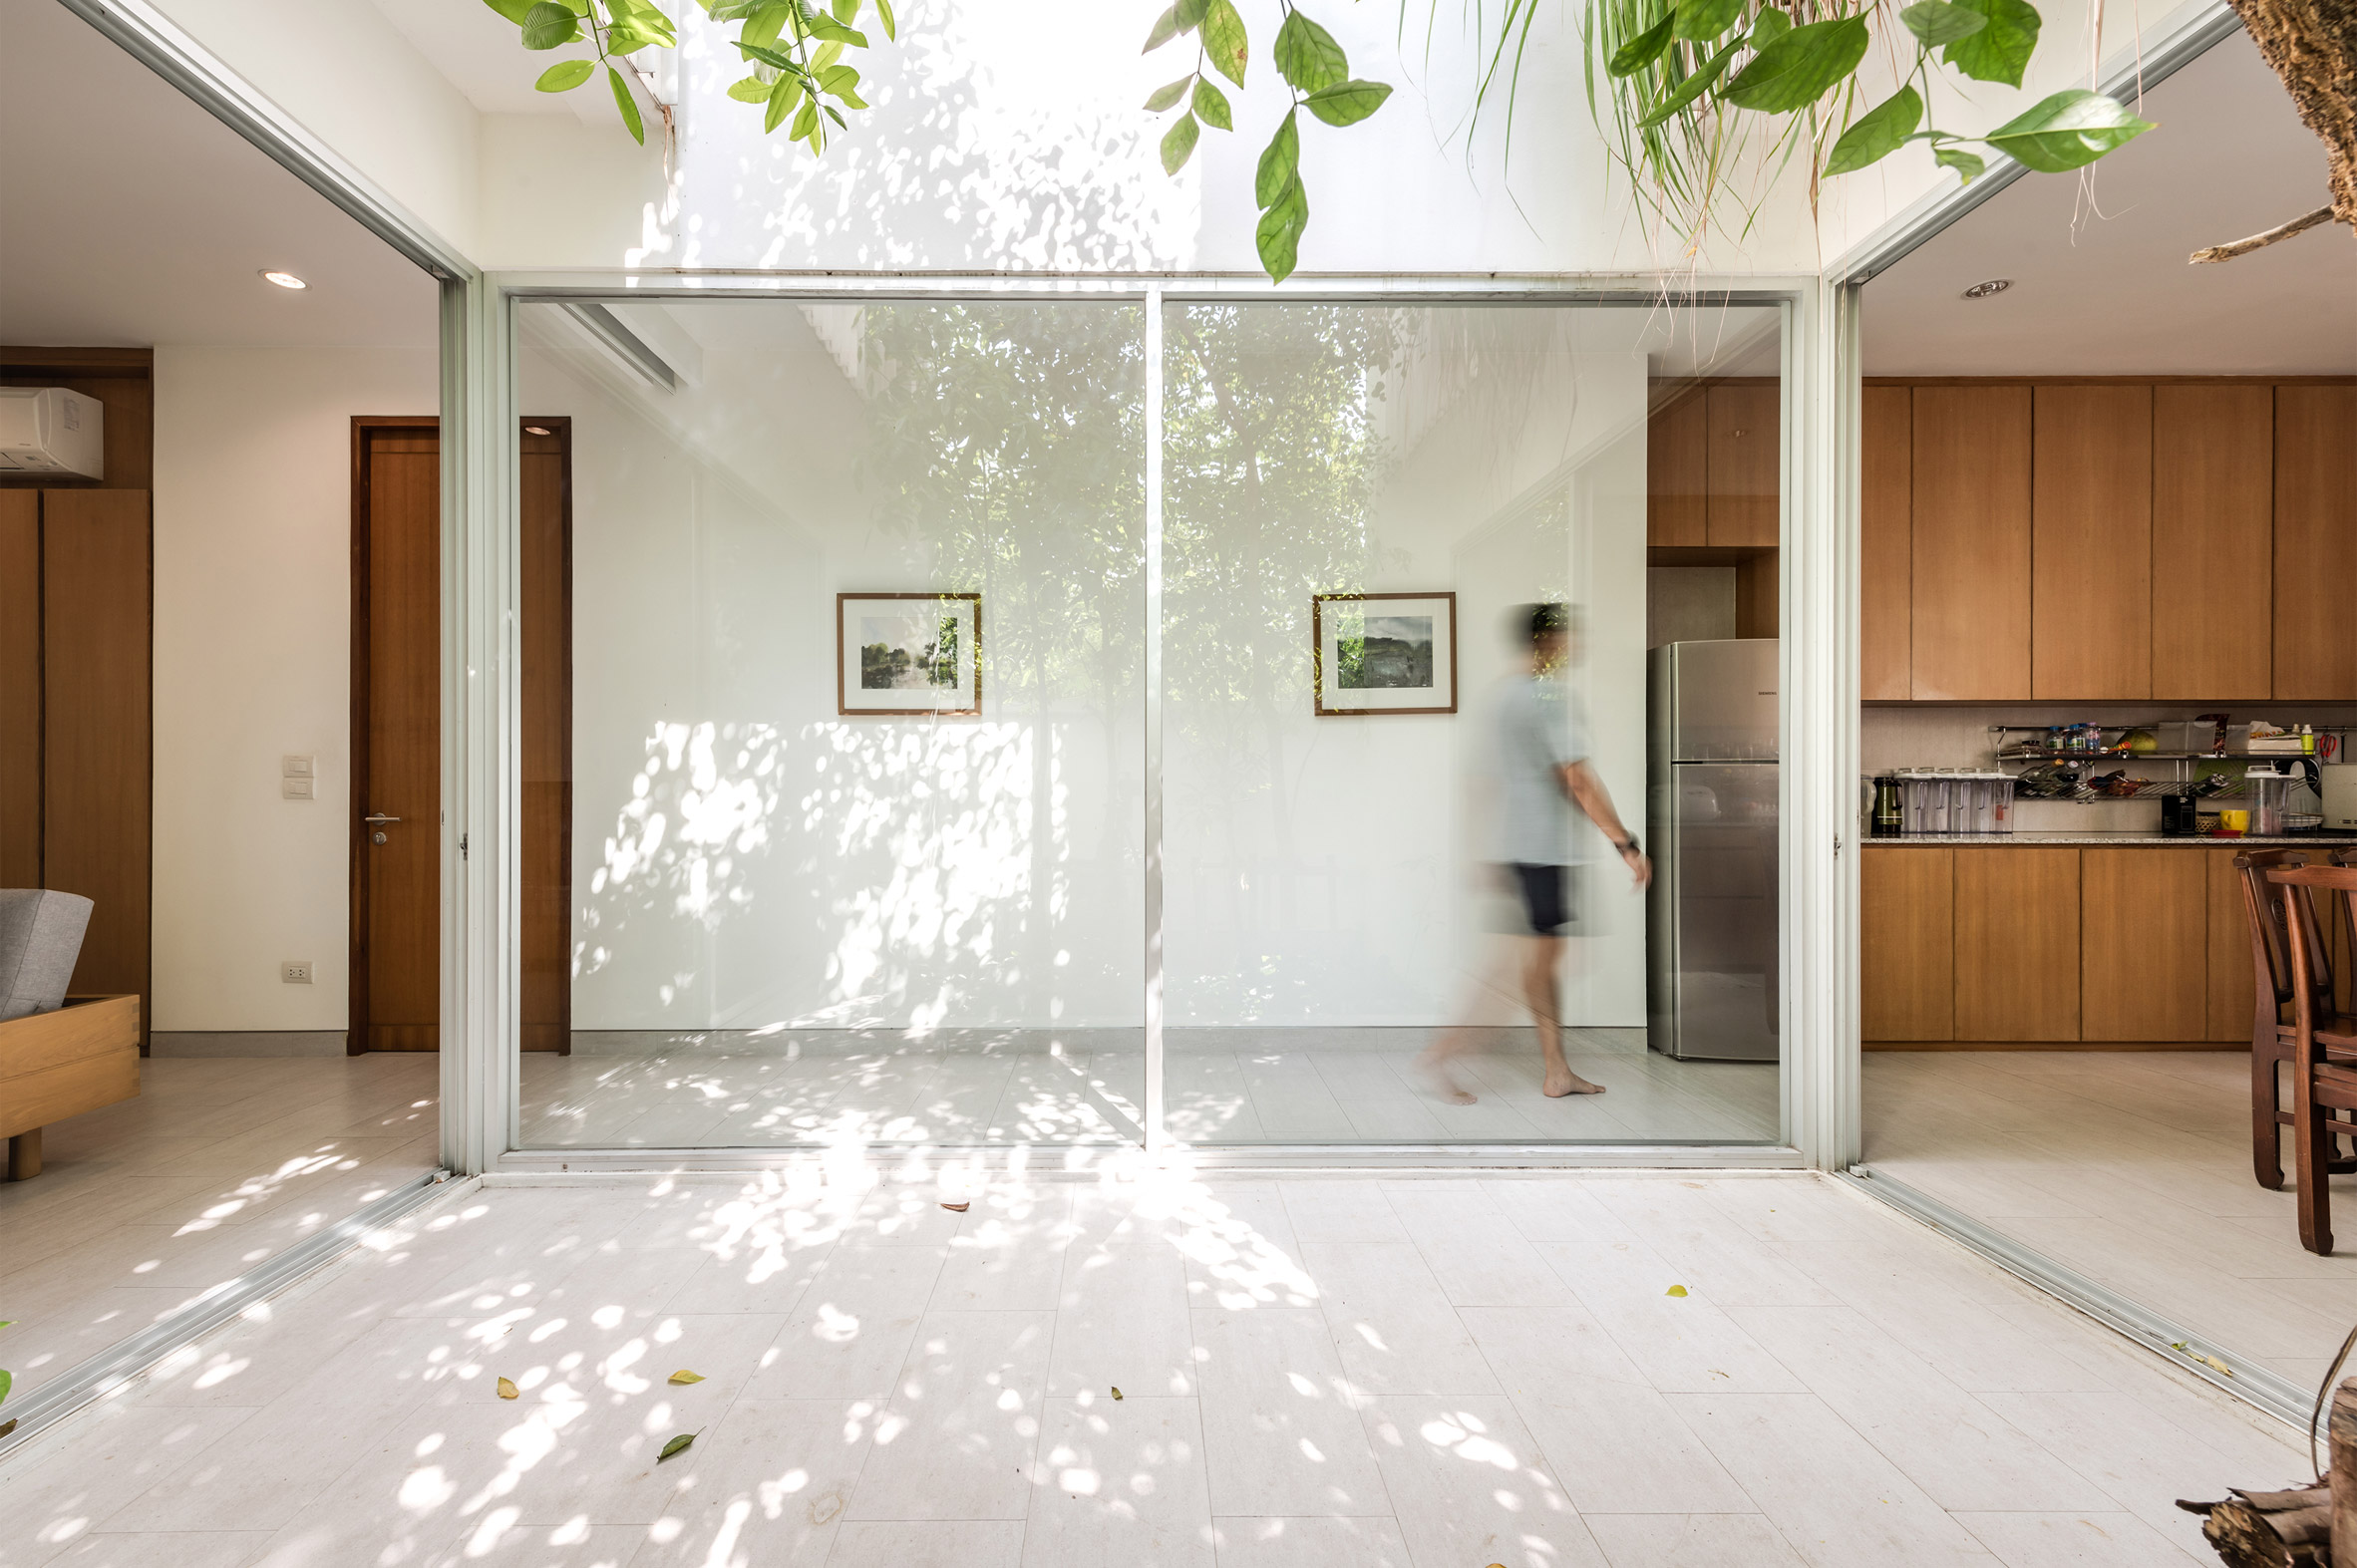 Courtyard of the Forest House in Bangkok